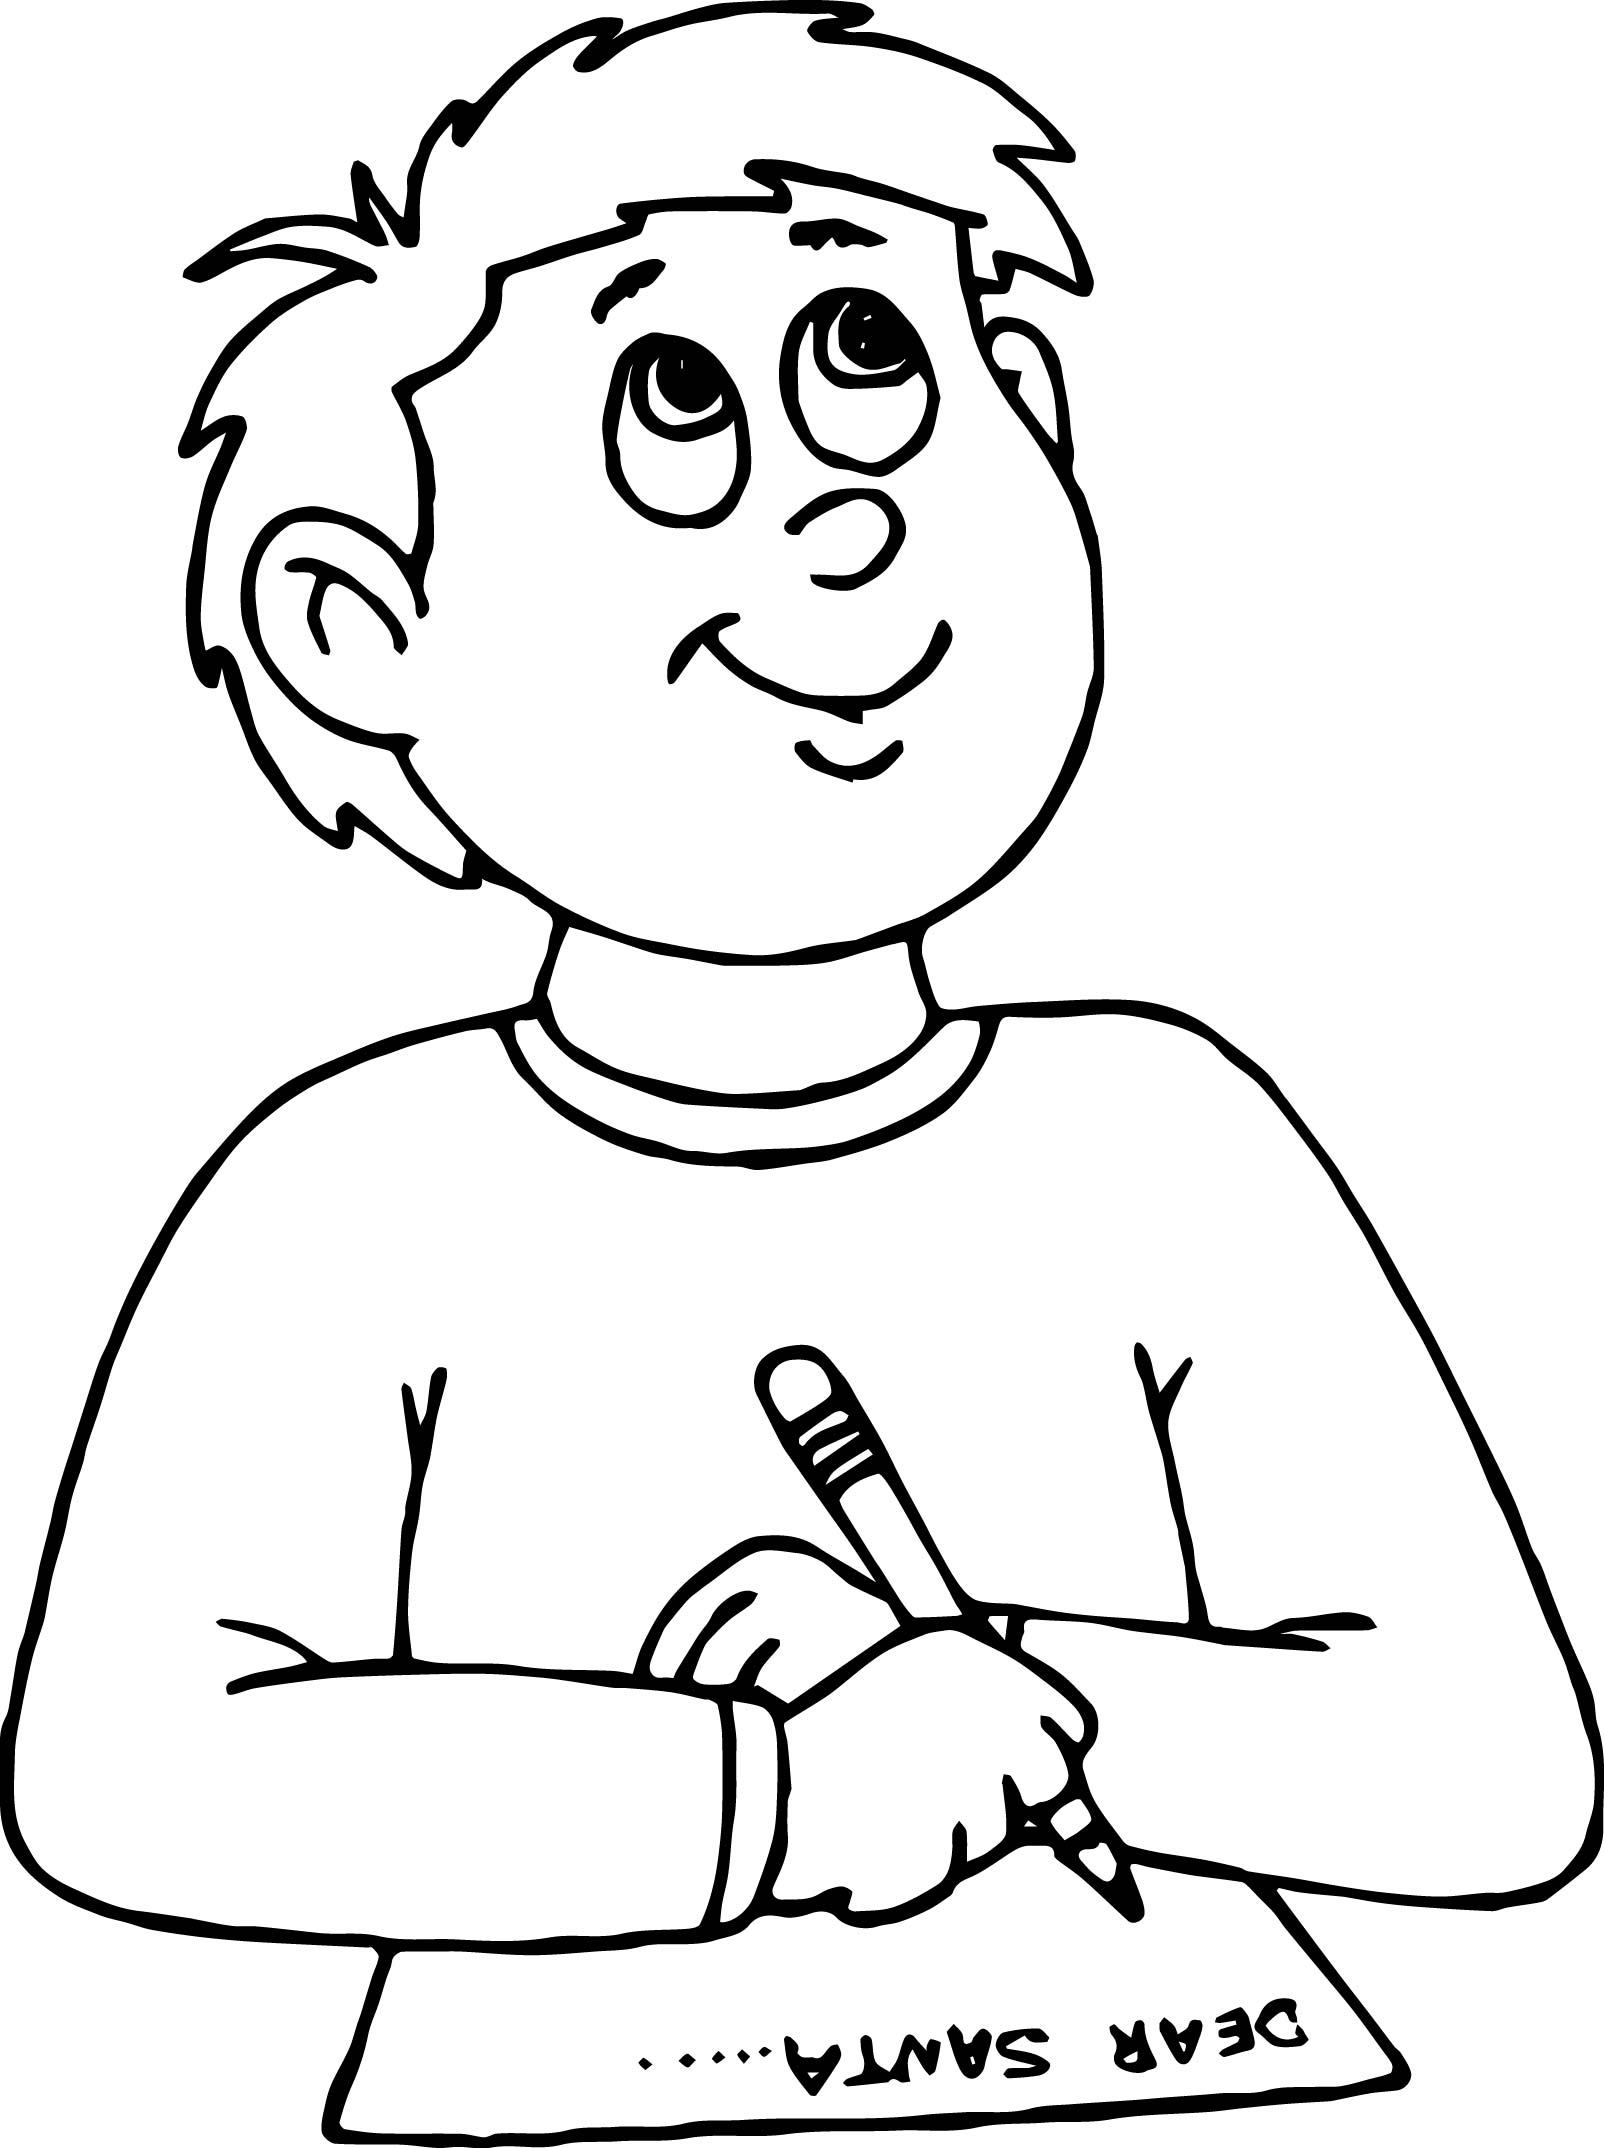 dear santa write boy coloring page